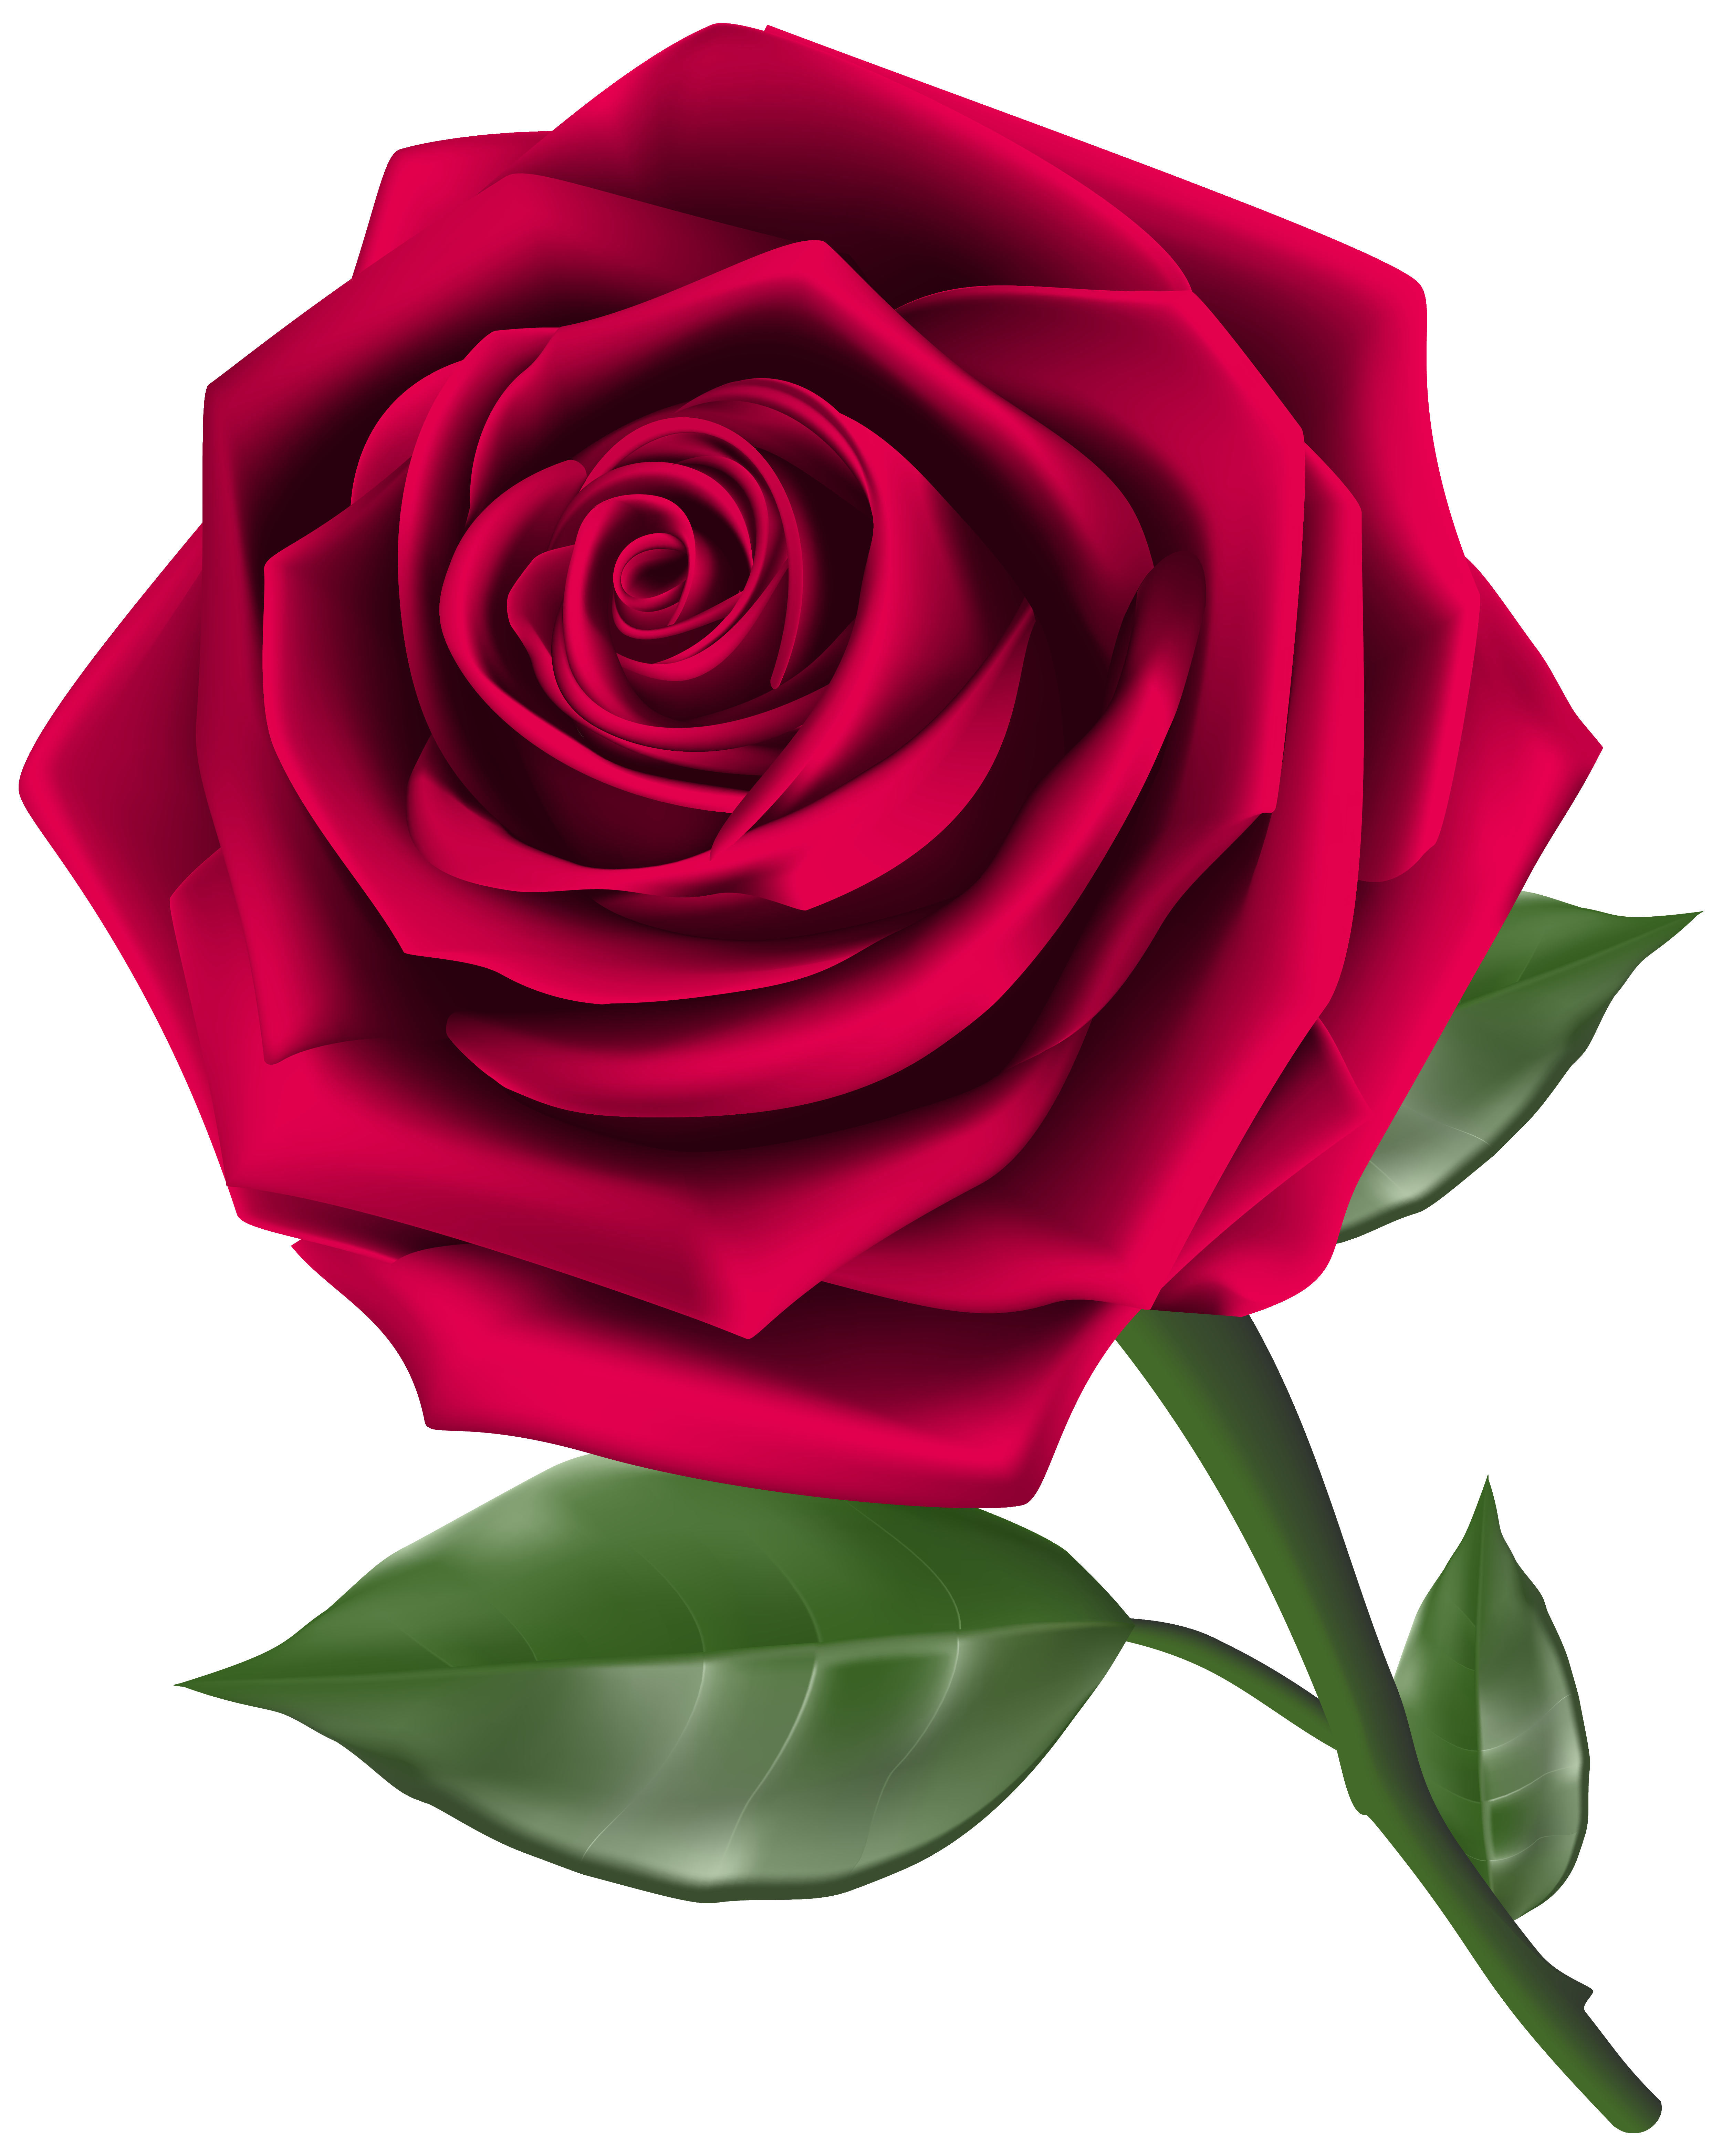 Roses steam rose clipart image